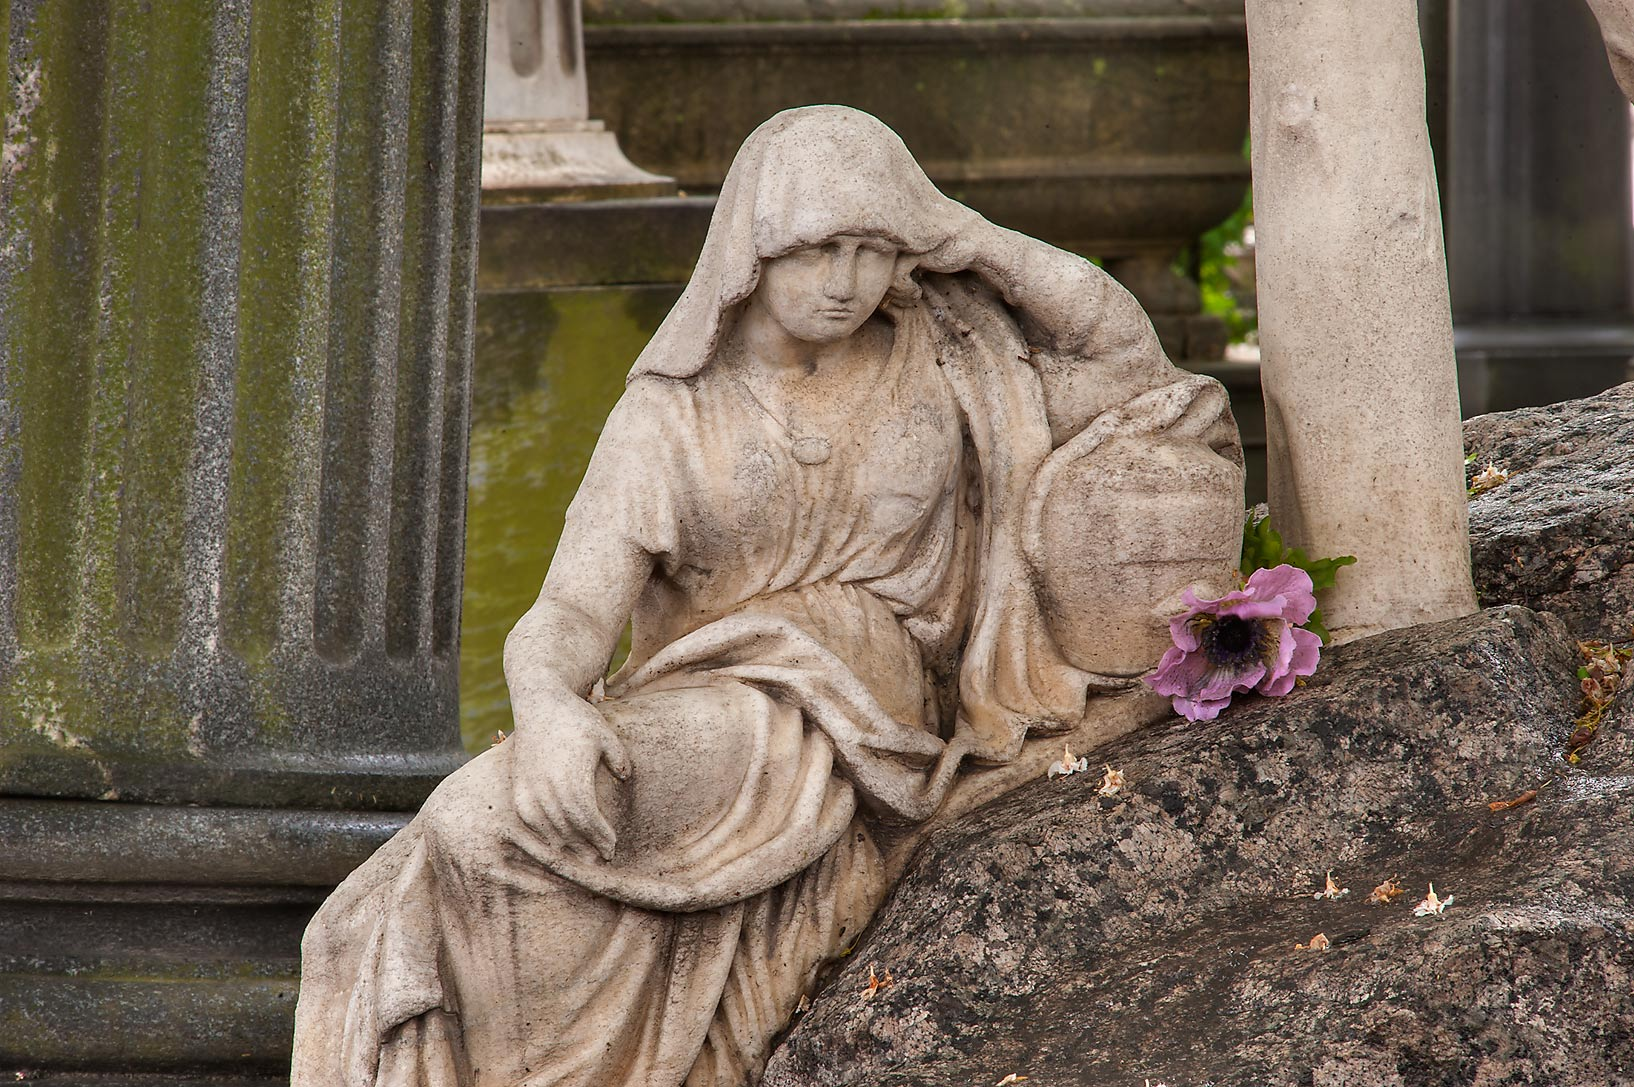 Marble sculpture of a woman sitting on a tomb in...Cemetery). St.Petersburg, Russia